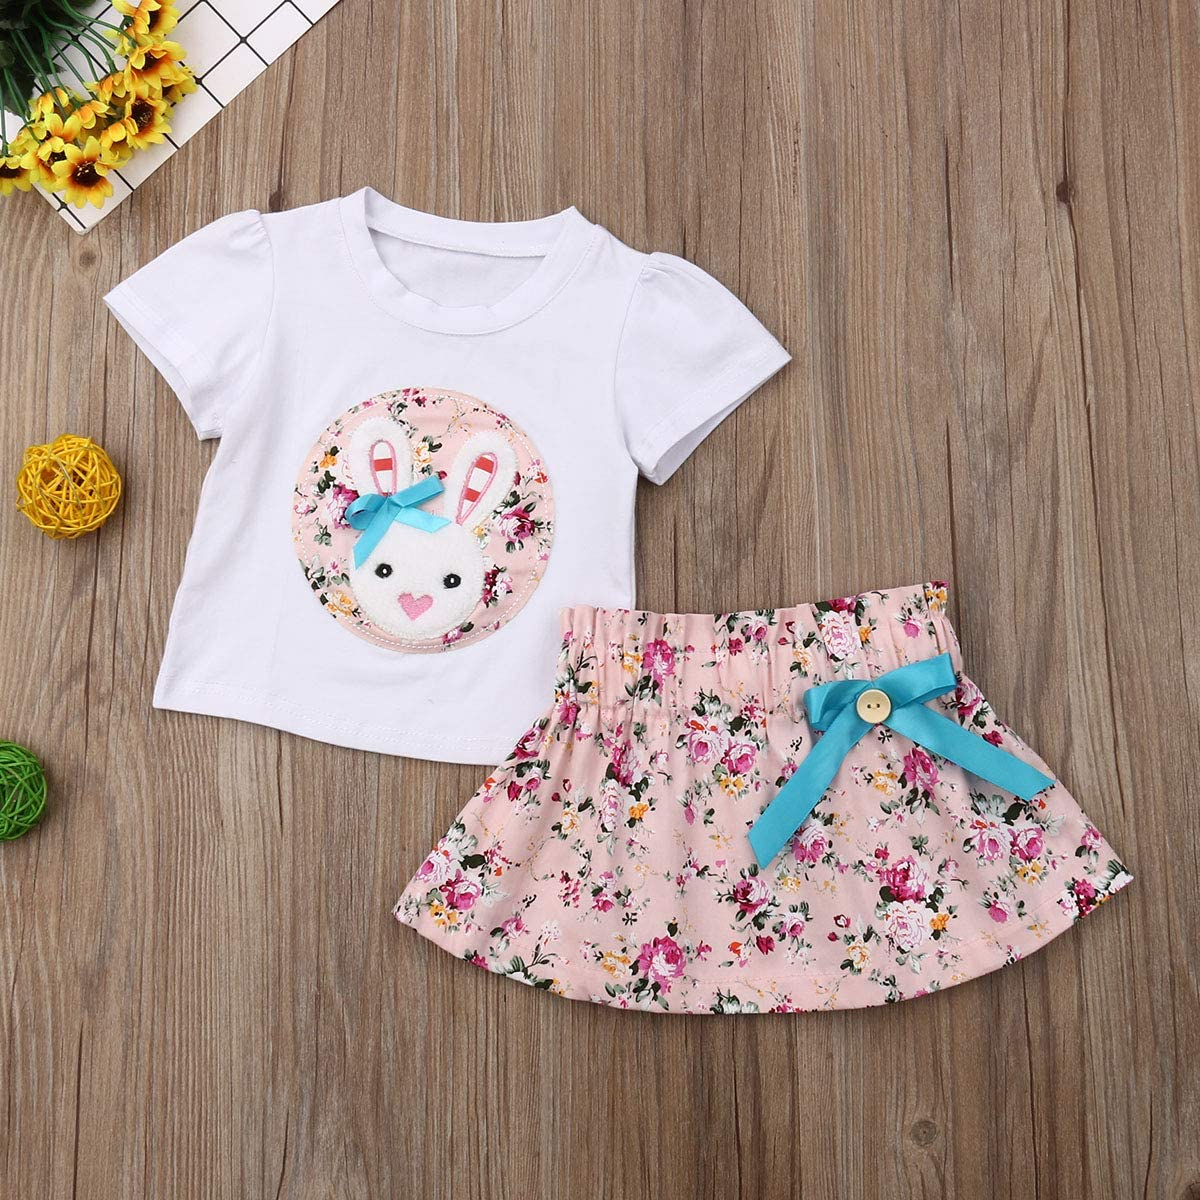 Kids Toddler Baby Girl Short Sleeve Bunny T-Shirt Tops Bowknot Floral Skirt Summer Outfit